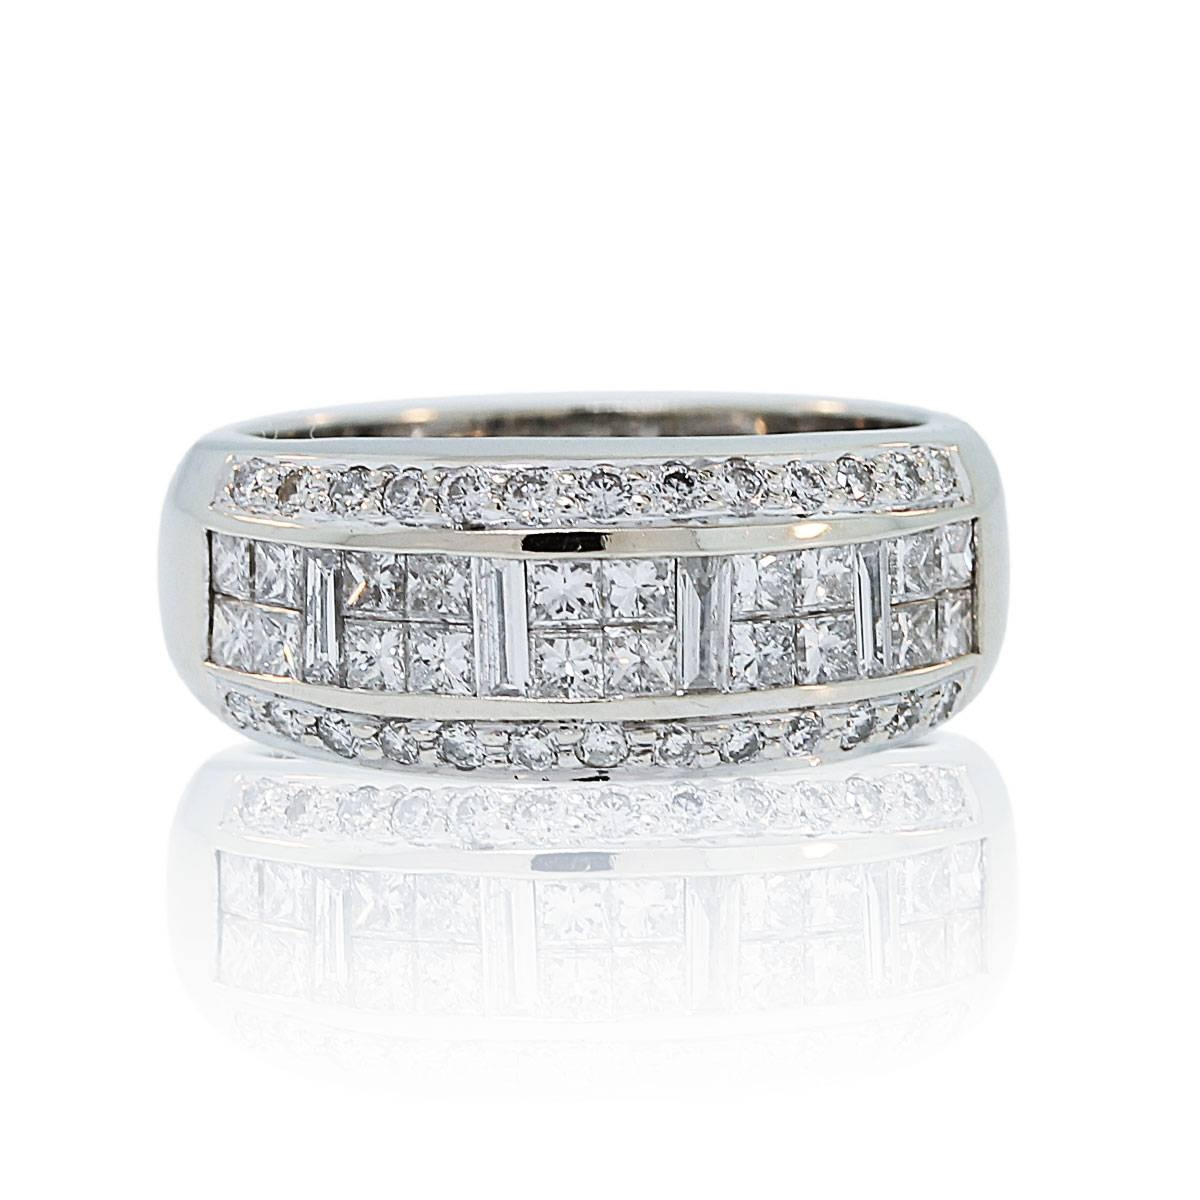 Levian 14k White Gold 1ctw Diamond Wedding Band Regarding Le Vian Wedding Bands (View 13 of 15)